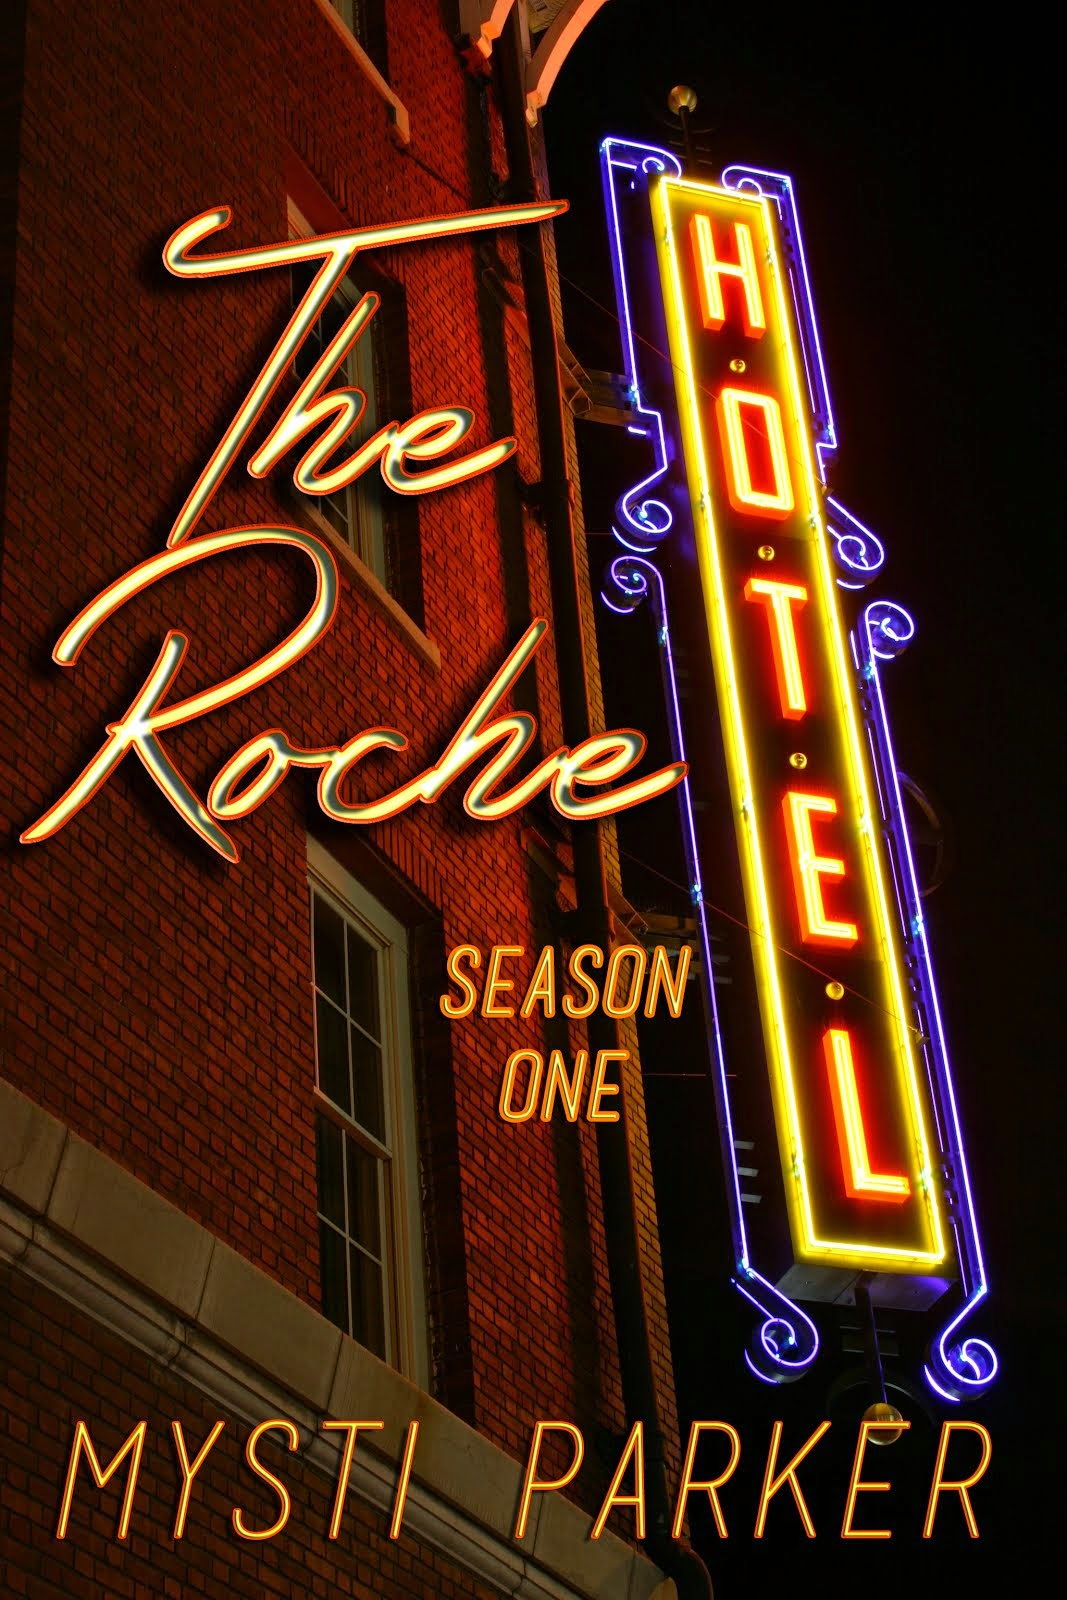 **FREE** Nov. 28-30!!! The Roche Hotel, Season One